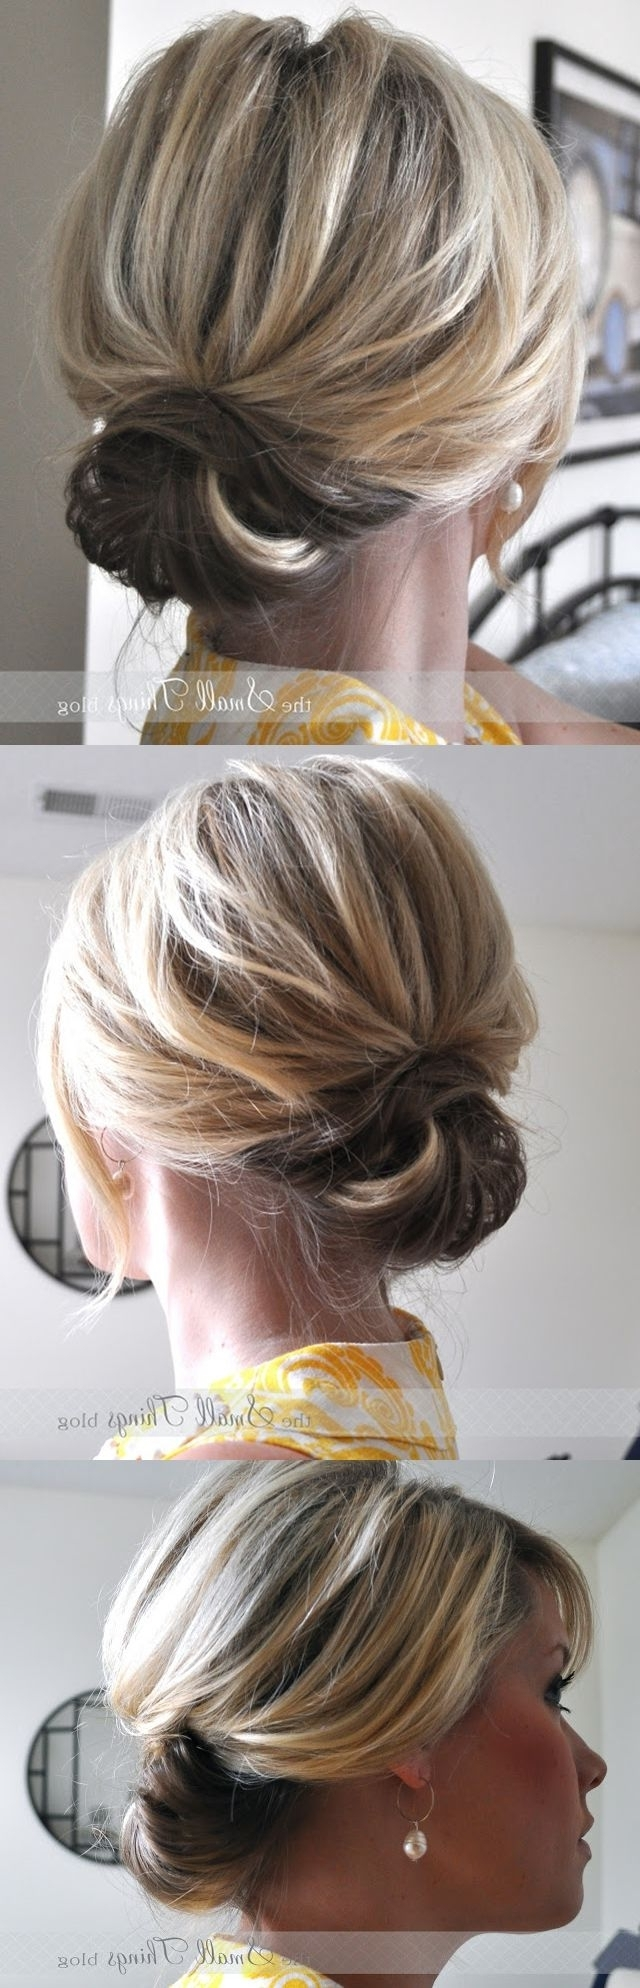 Cute Hairstyles, Hairstyle Ideas (View 2 of 15)